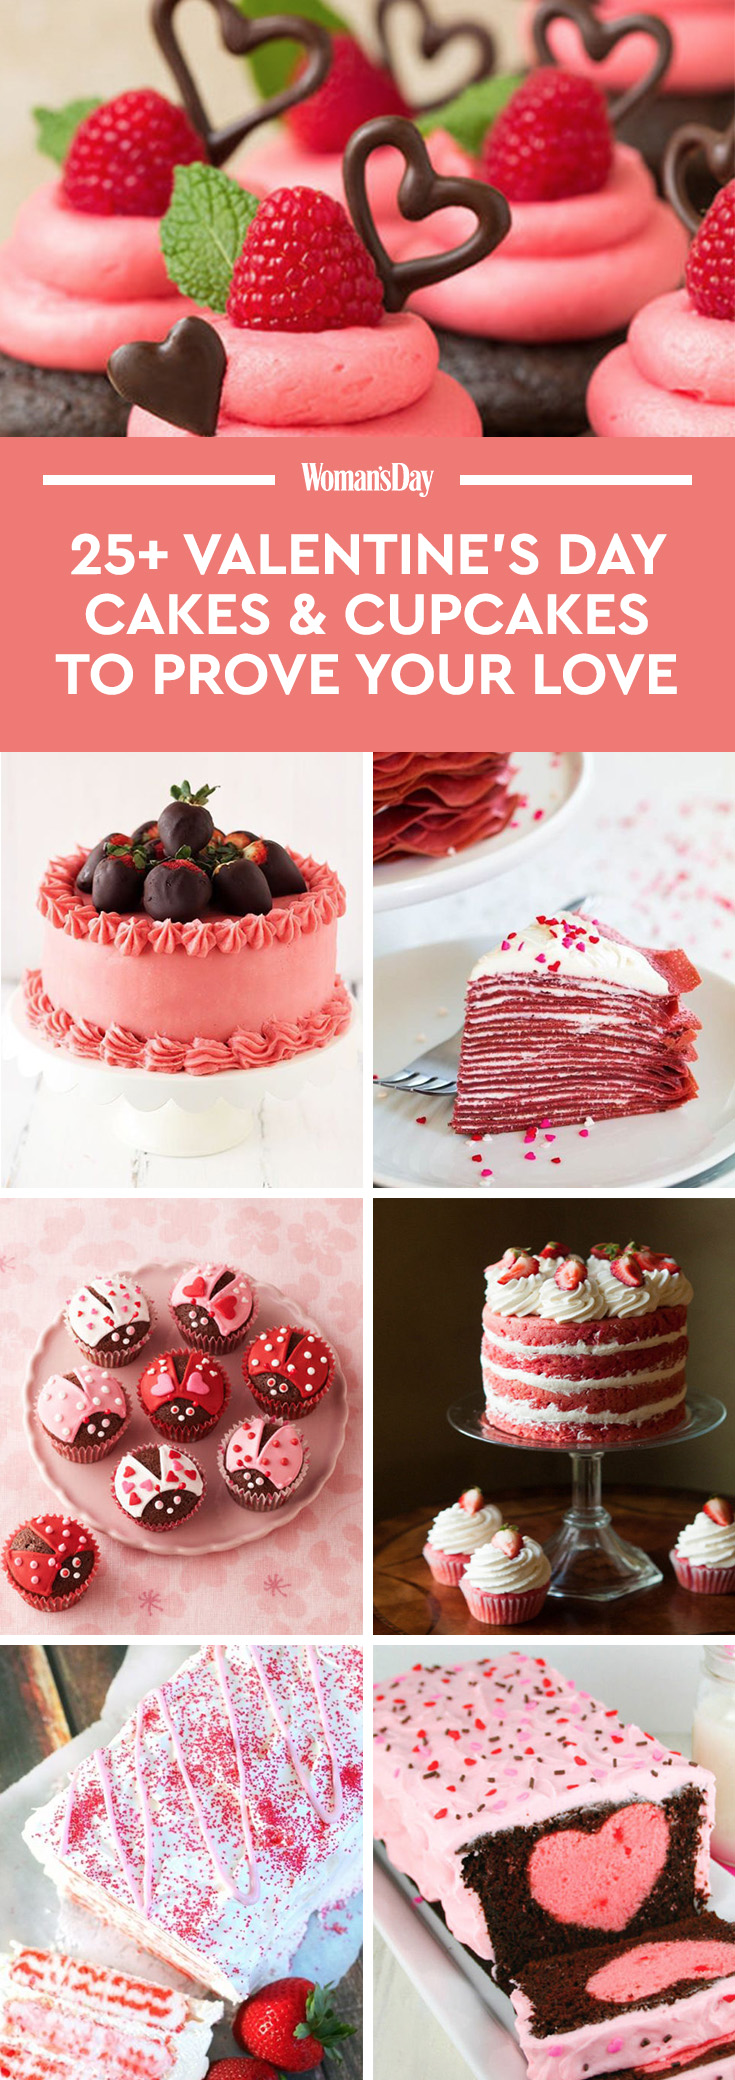 27 valentine's day cupcakes and cake recipes - easy ideas for